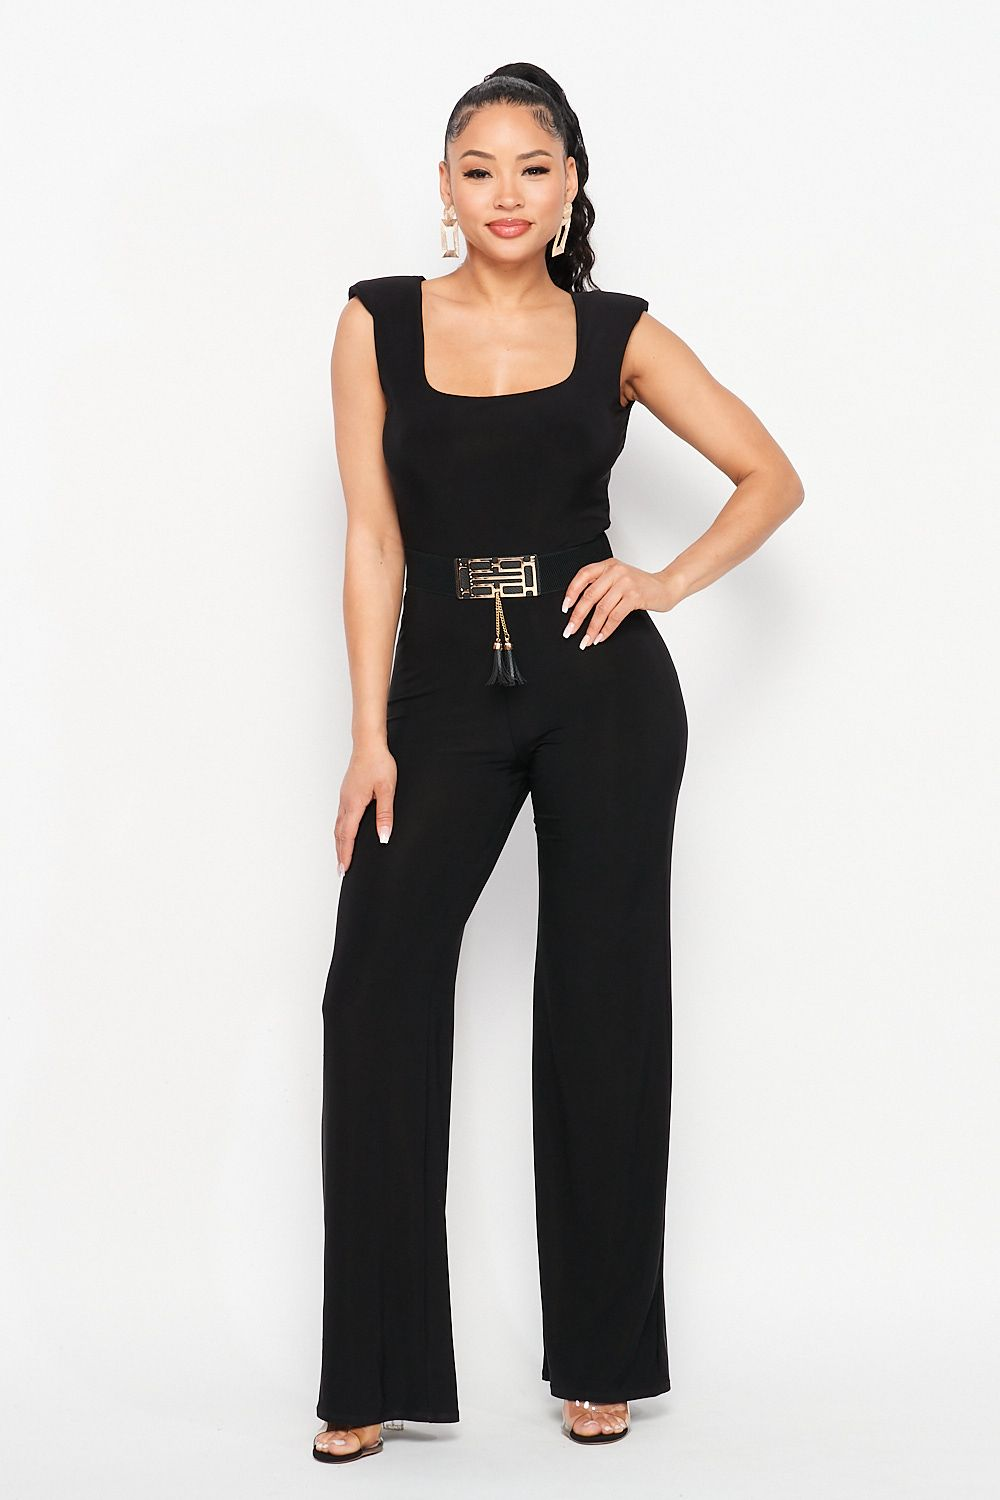 Solid Double Fabric Wide Leg Square Neckline Jumpsuit with Gold Belt in Black - Fashion House USA